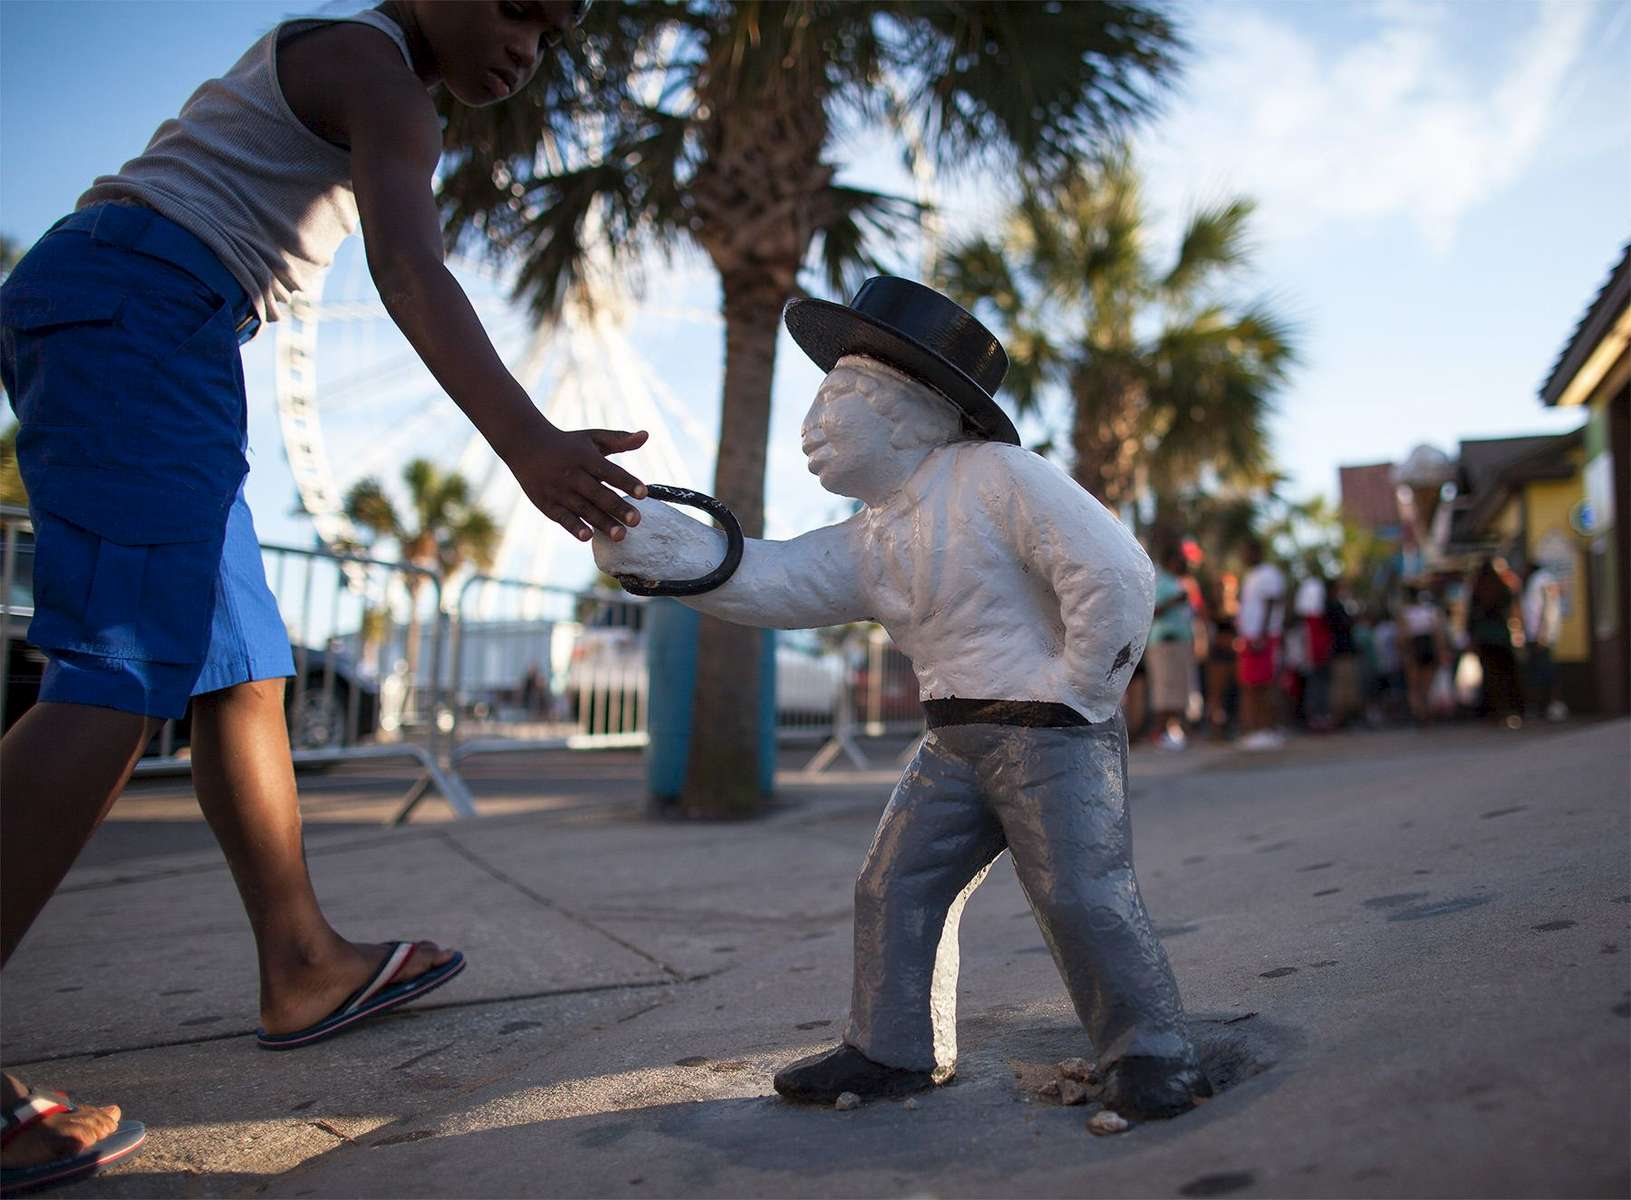 A boy touches an old racial lawn jockey that has been painted white on Ocean Boulevard during the 2015 Atlantic Beach Memorial Day BikeFest in Myrtle Beach, South Carolina May 24, 2015. After three people were killed and seven wounded in shootings during 2014 Bikefest, State officials called for an end to the event that draws thousands to the family-friendly beach town. Their efforts were unsuccessful. Bikers returned to Myrtle Beach - just a week after a bloody motorcycle gang shootout in Waco, Texas. But this time authorities are more prepared, with dozens of new surveillance cameras and a police force three times the size of last year's. REUTERS/Randall Hill